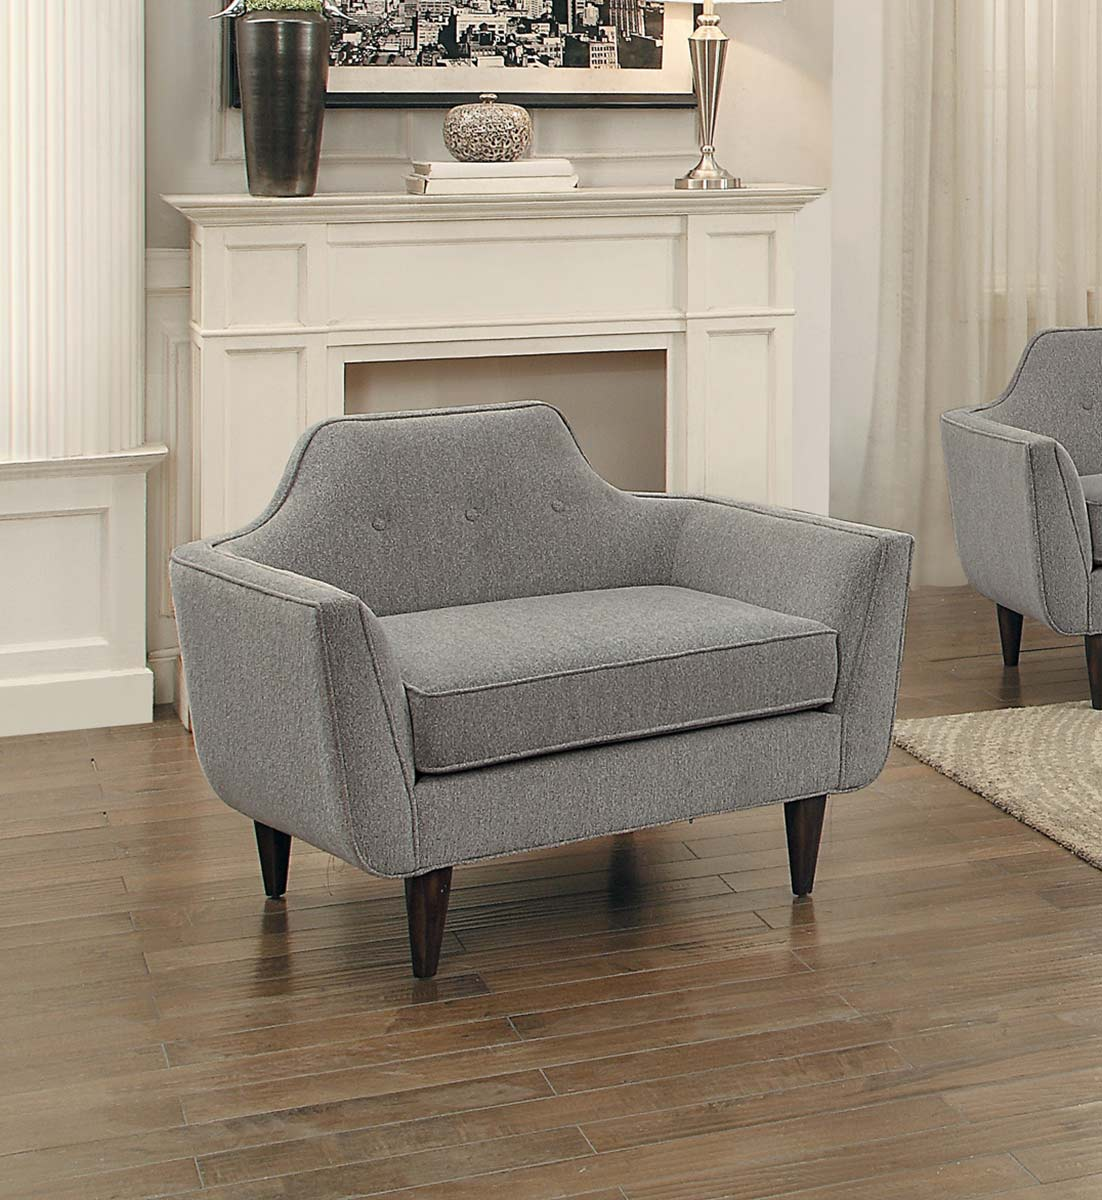 Homelegance Ajani Chair - Gray Fabric